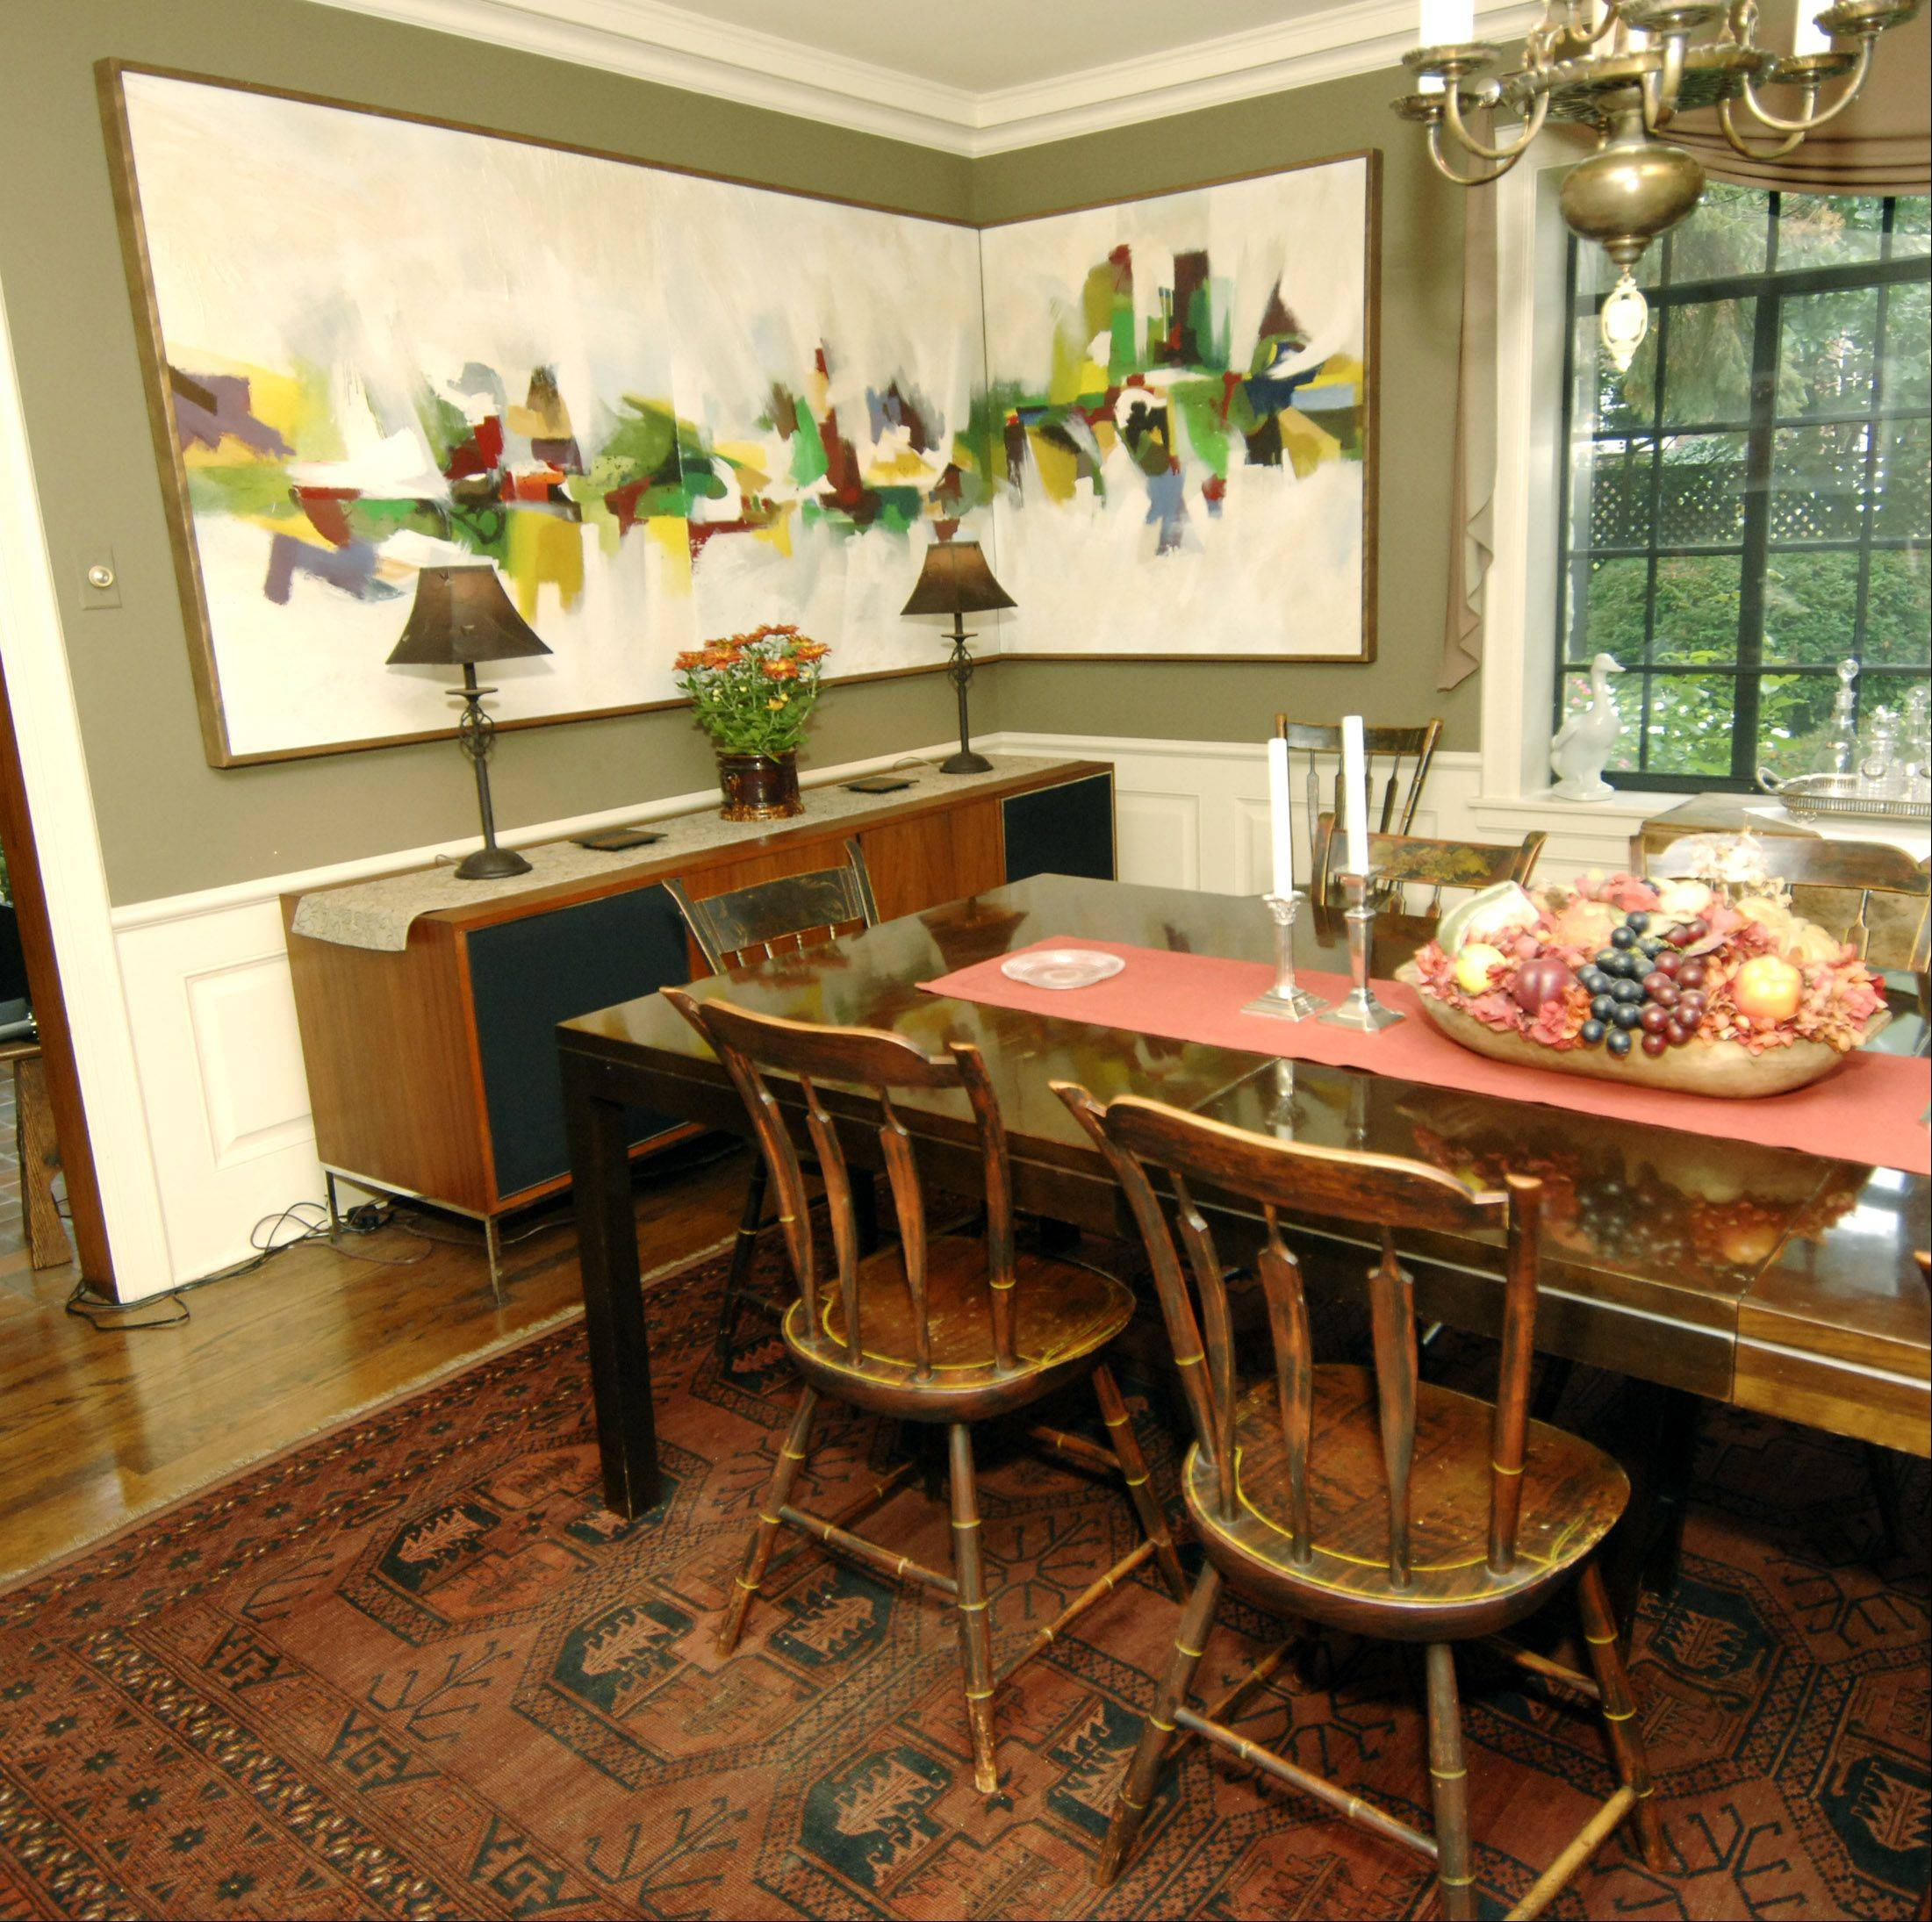 LaGrange couple blends early American and modern pieces to create